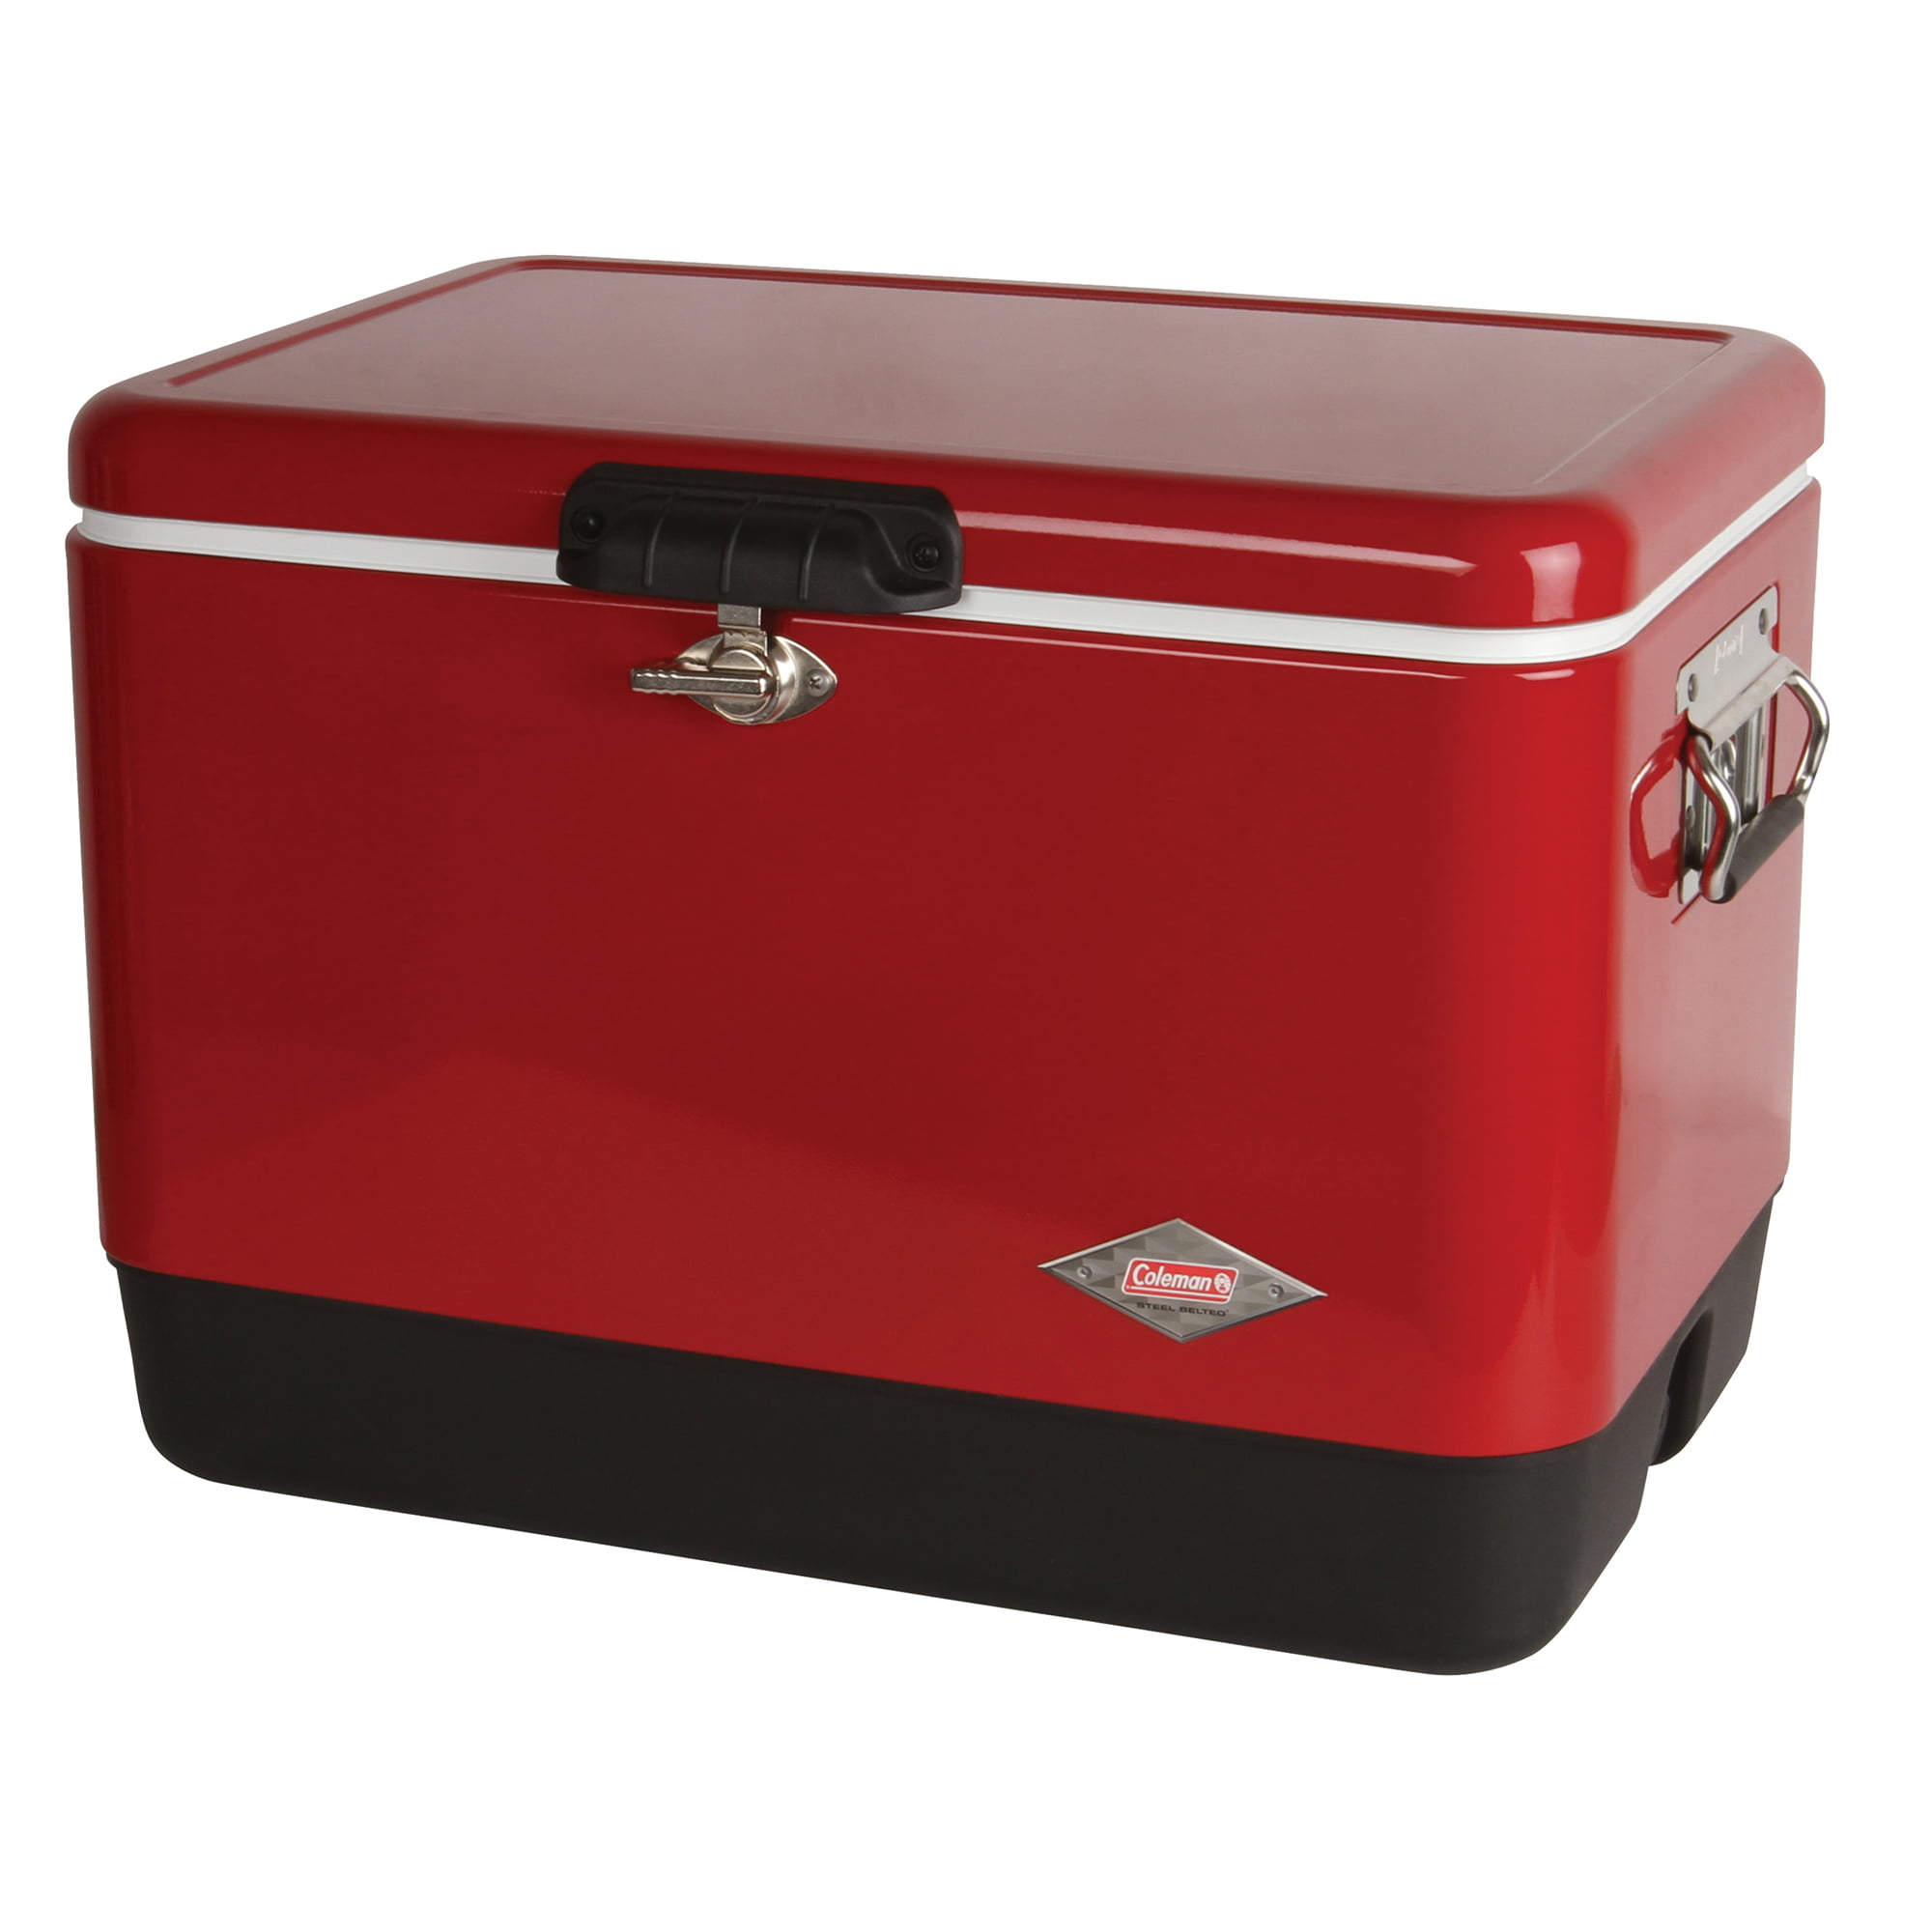 Details about Coleman 54 qt Steel Belted Cooler